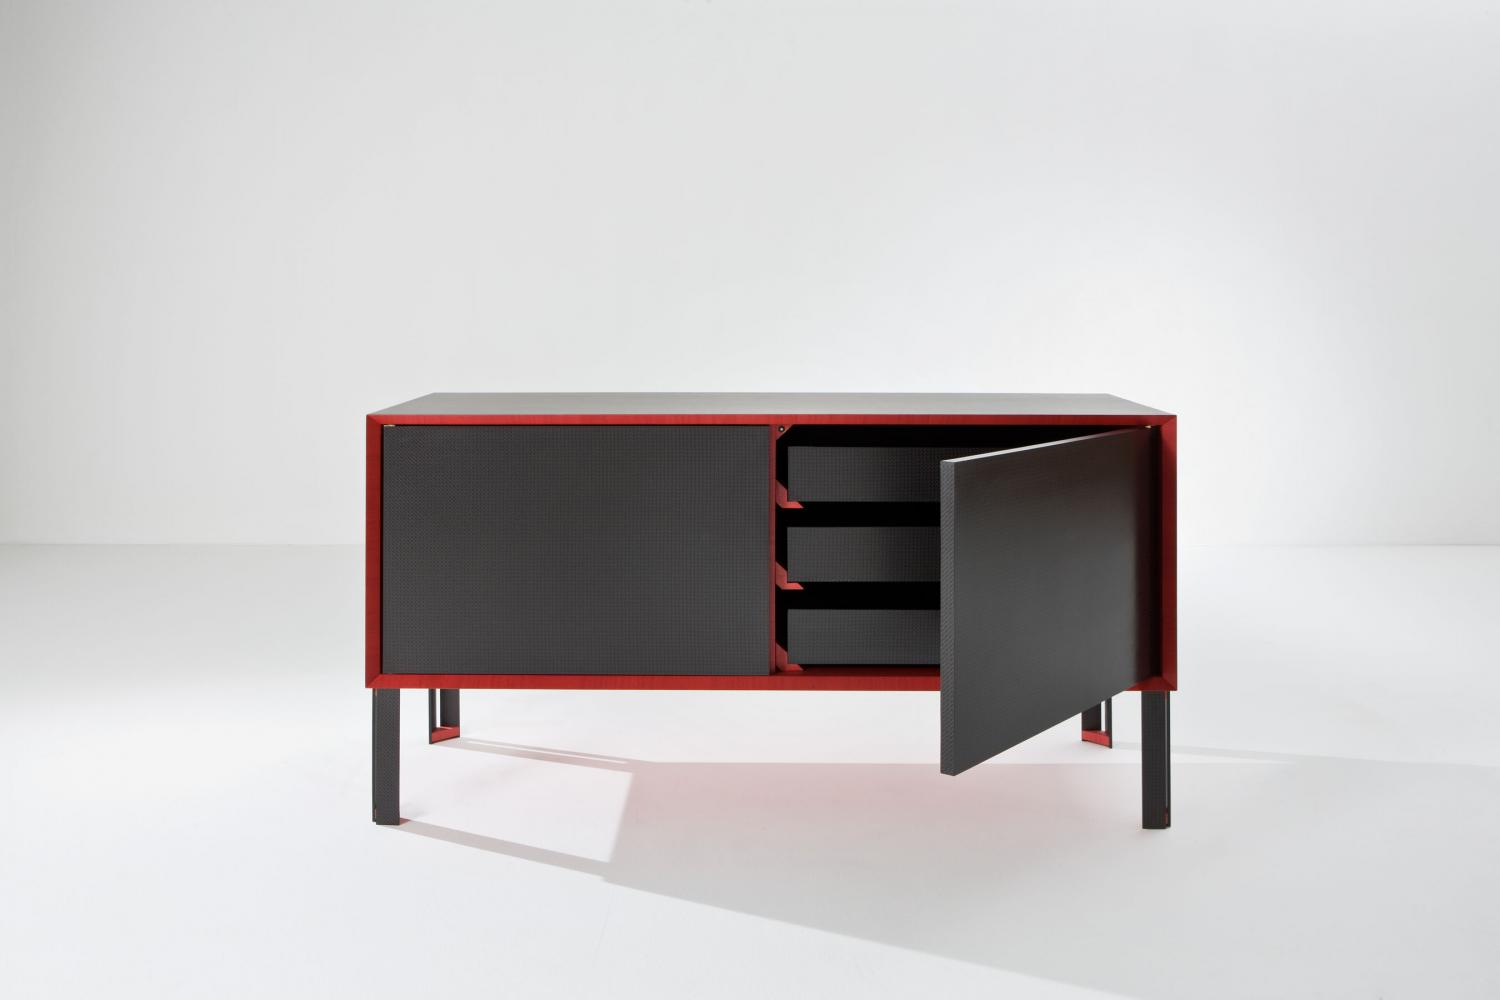 Luxury sideboard designed by Fabrizio Giugiaro handmade in Italy in carbon fiber and StoneOak wood with red frame.